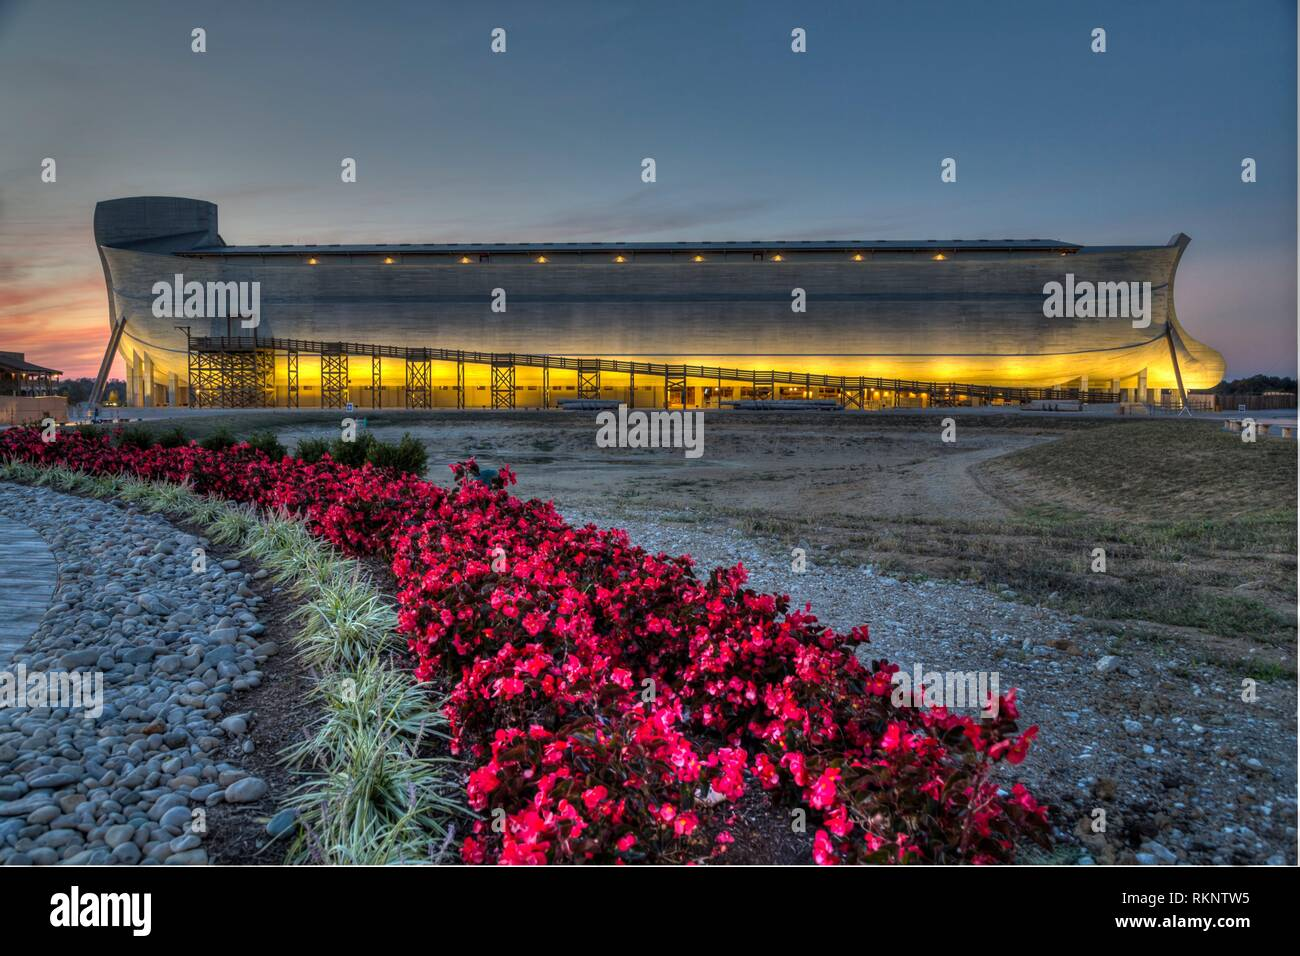 The exterior of the Ark at dusk at The Ark Encounter, Williamstown, Kentucky, USA. - Stock Image